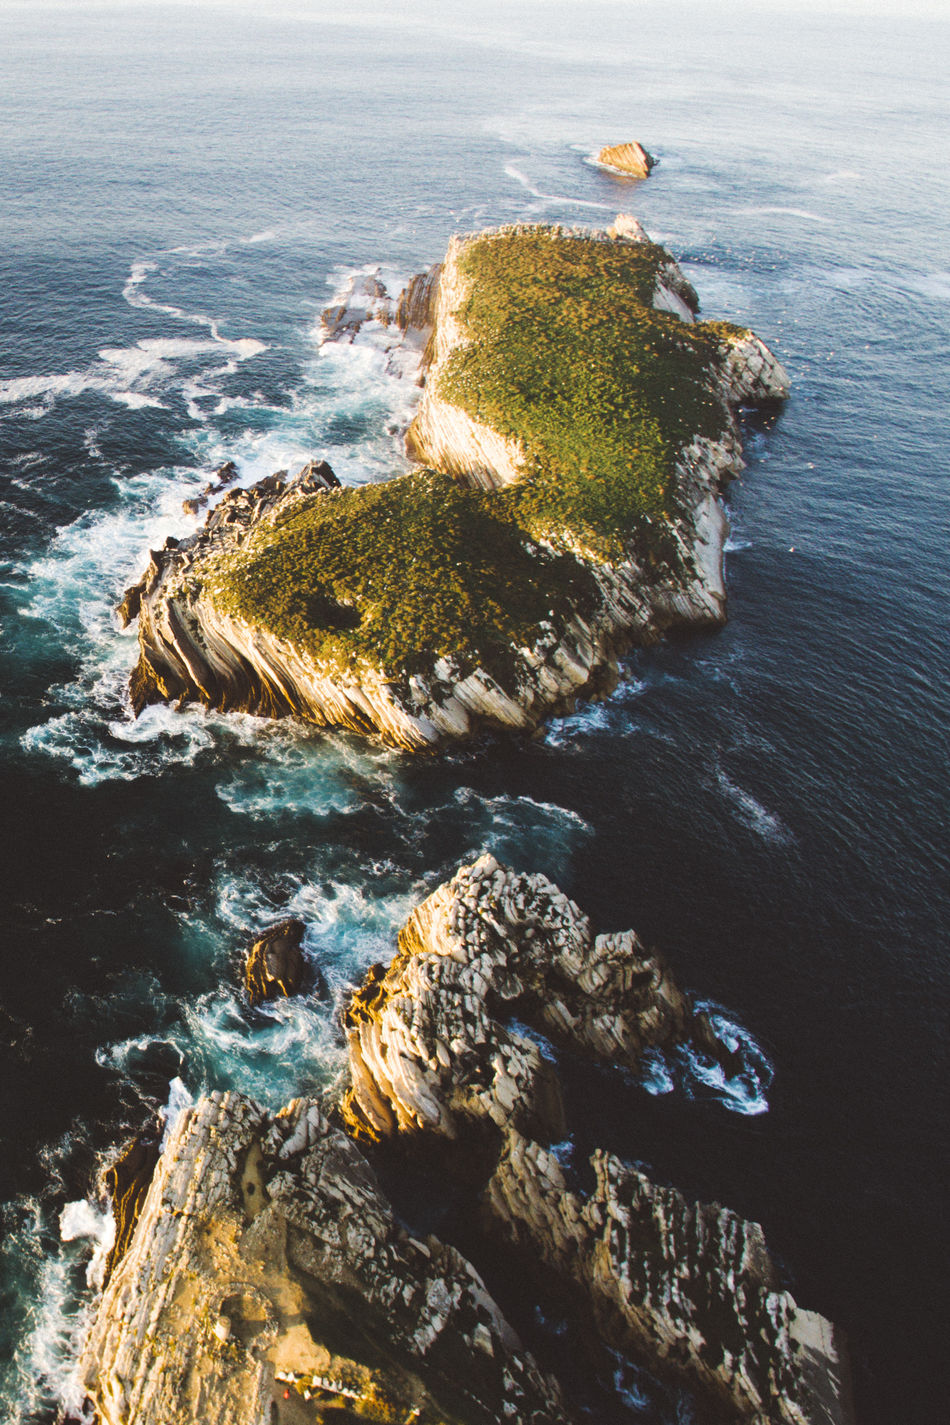 Dronephotography Droneshot Drone Moments Outdoors Scenics No People Tranquility Water Island Nature High Angle View DJI Phantom 3 Professional DJI Phantom 3 DJI Mavic Pro DJI Phantom 3 Advanced Visualsoflife Visual Stories Market Stall Market Reviewers' Top Picks Market Bestsellers 2017 Sea Beach Beauty In Nature Day Wave